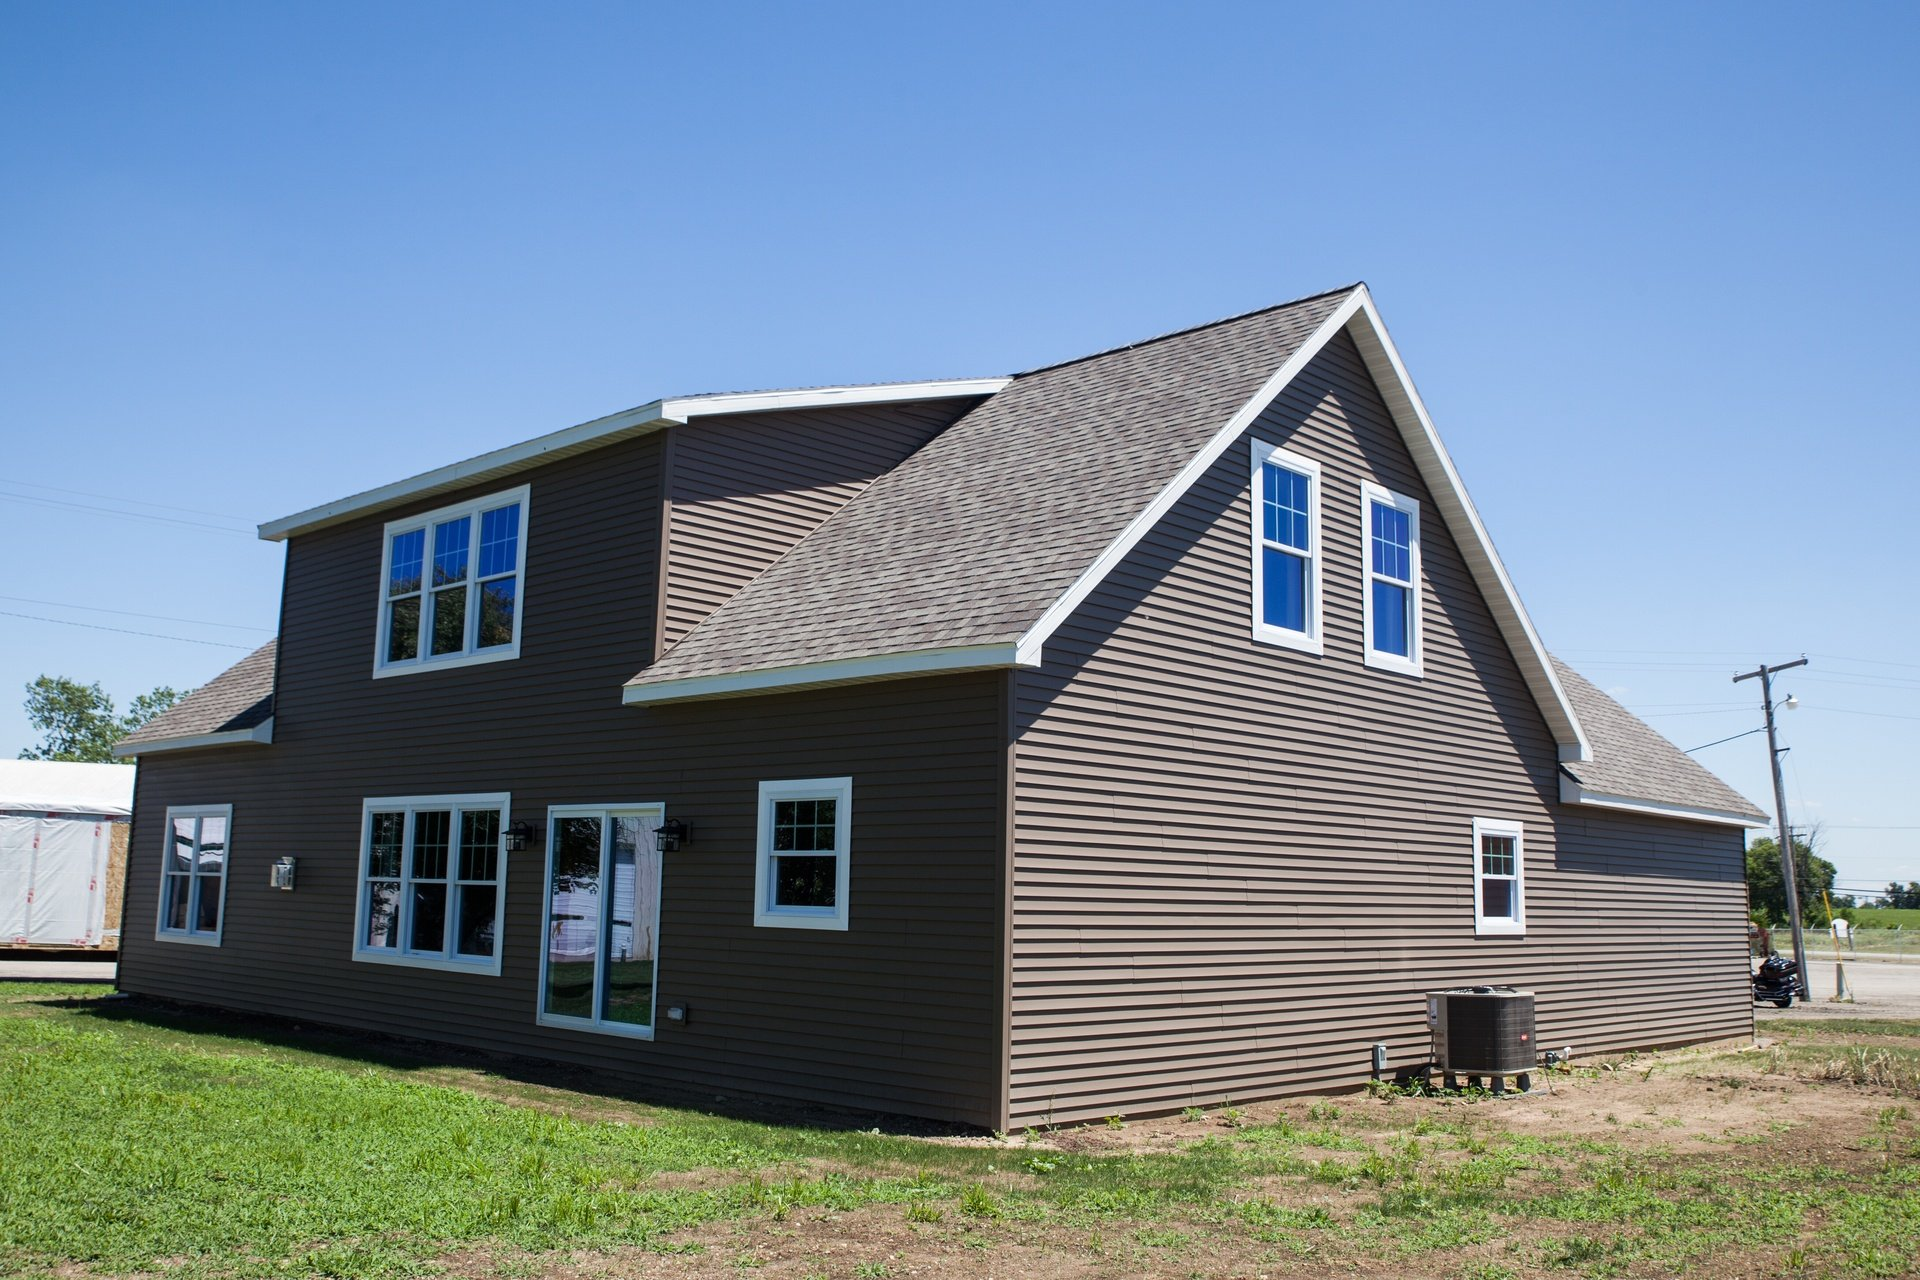 Craftsman cape cod modular home 2 524 sf 3 bed 2 1 2 for Craftsman cape cod